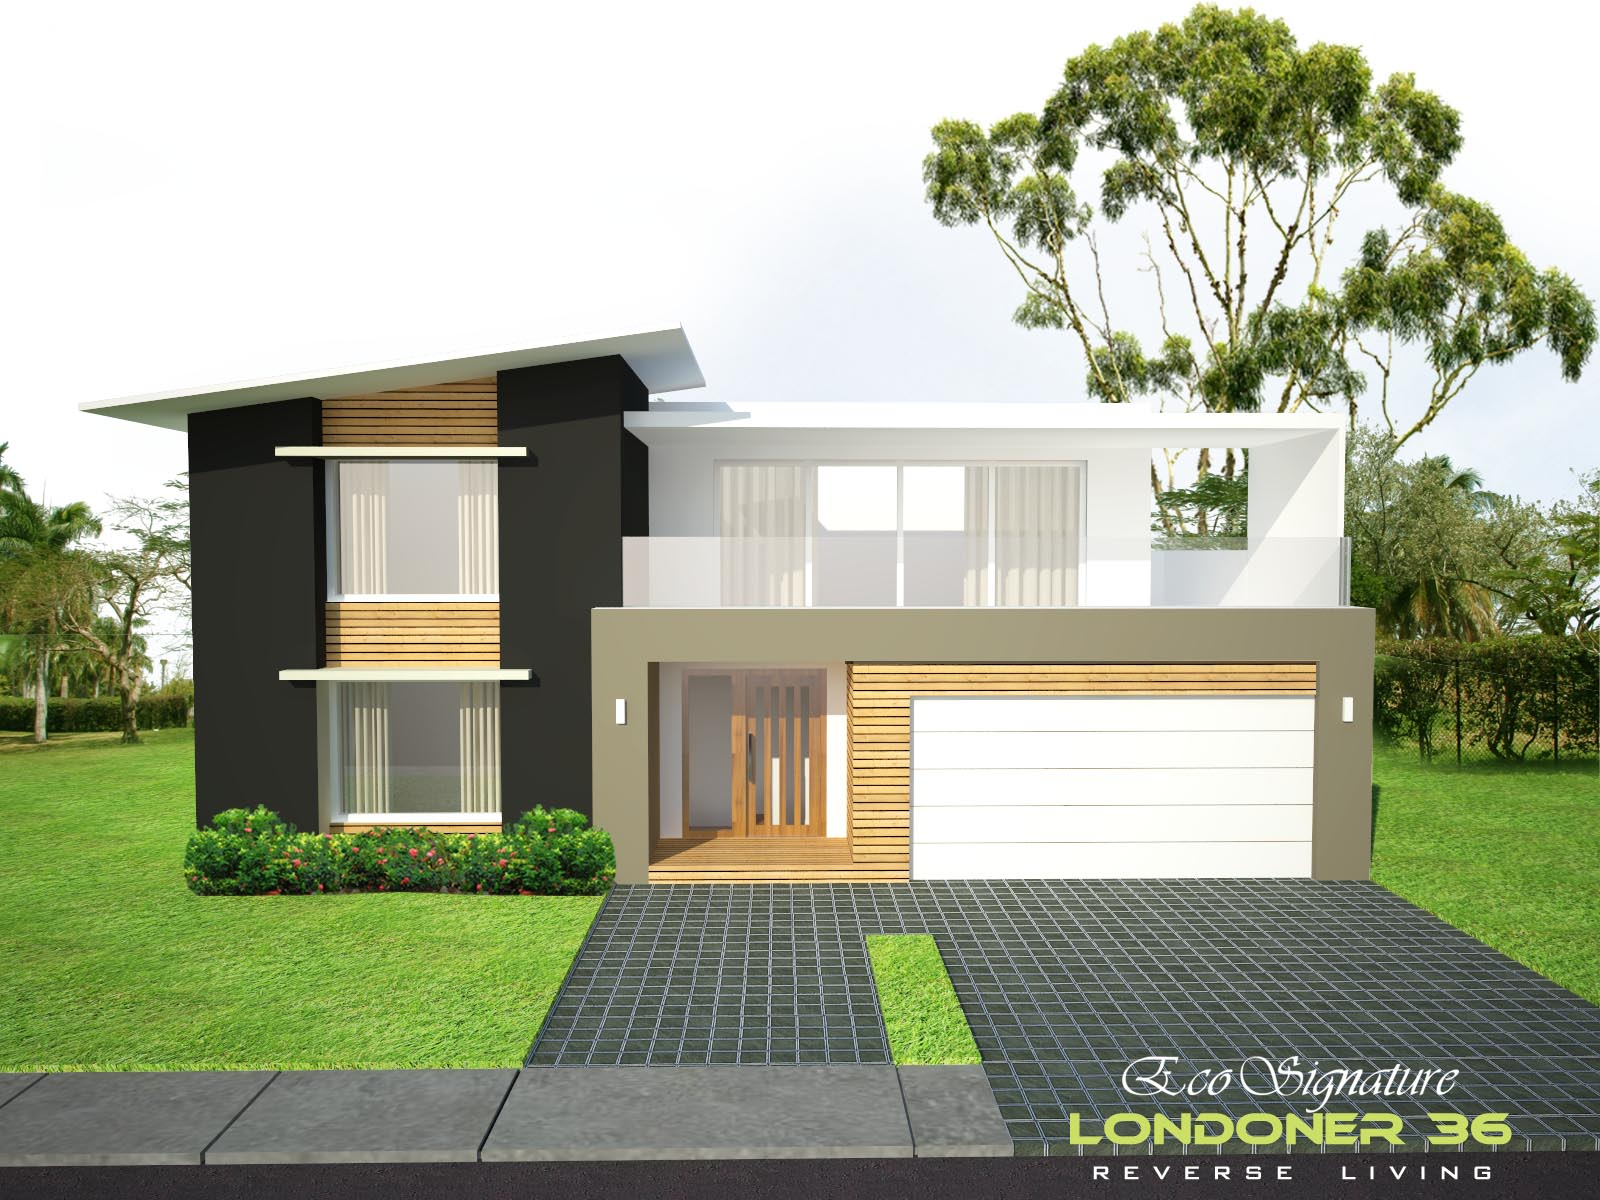 Londoner 37 eco signature reverse living Reverse living home plans